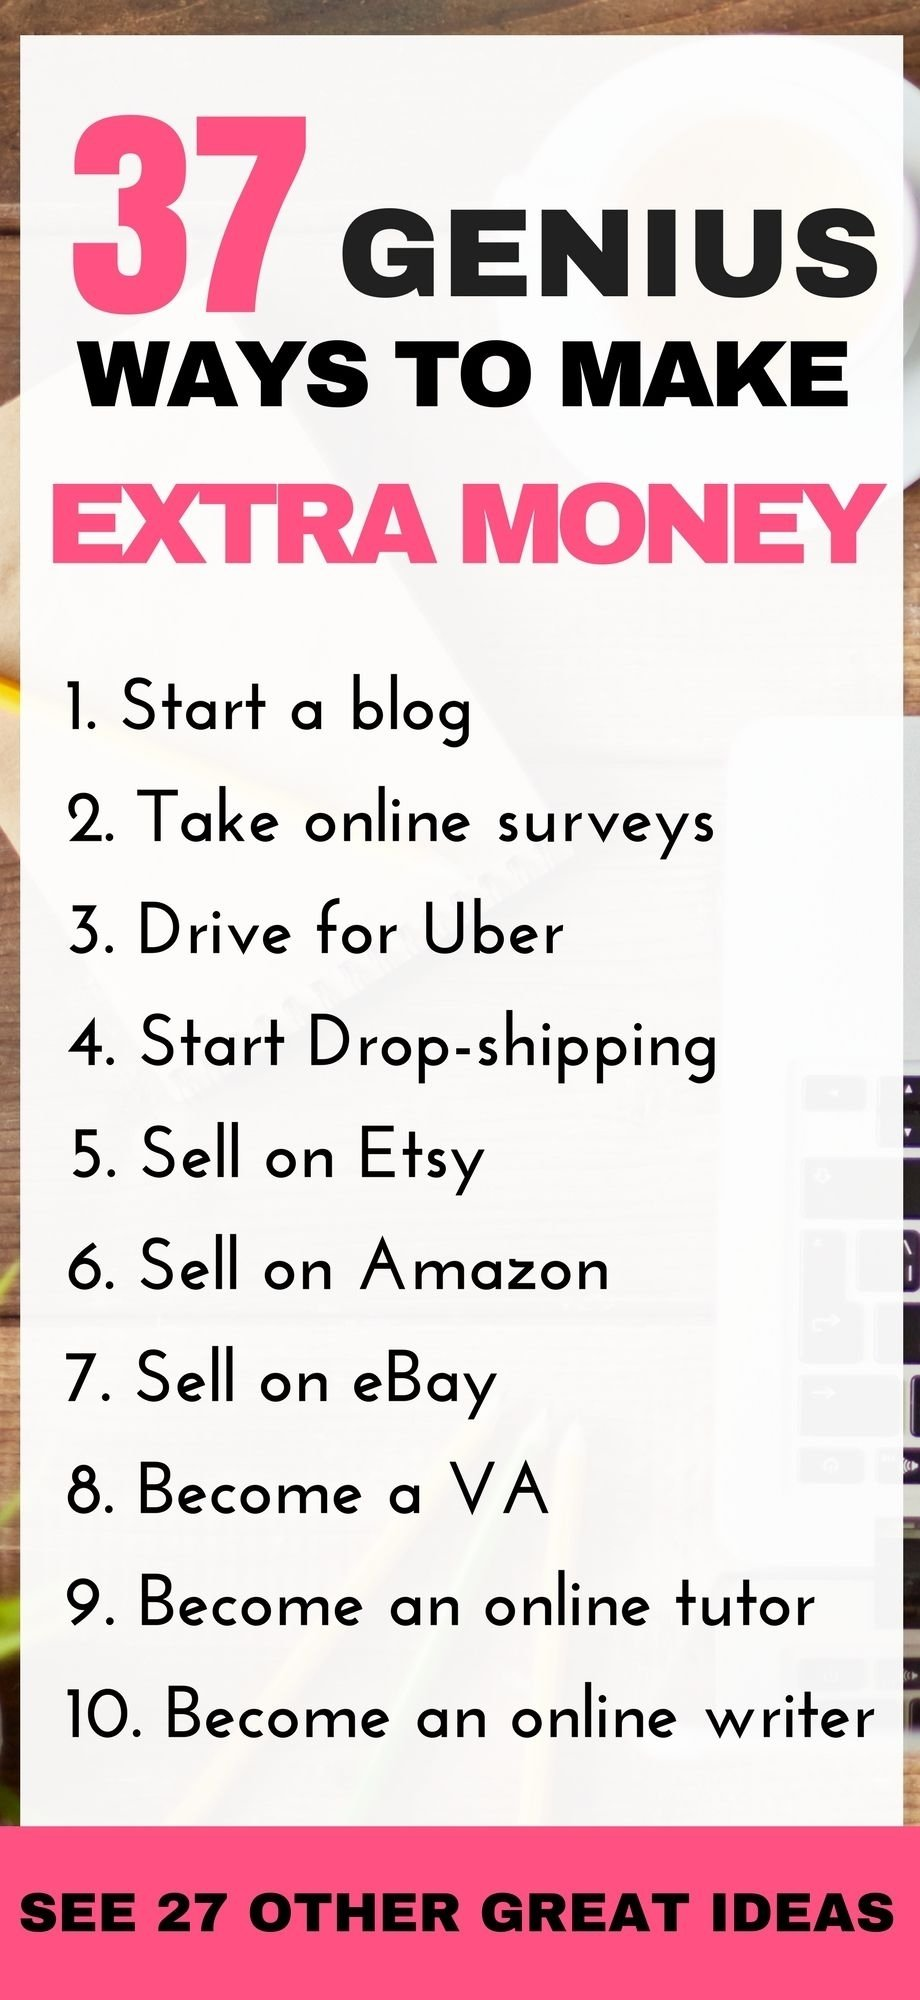 10 Fantastic Ideas To Earn Extra Money 30 genius ways to make extra money 1000 working from home 1